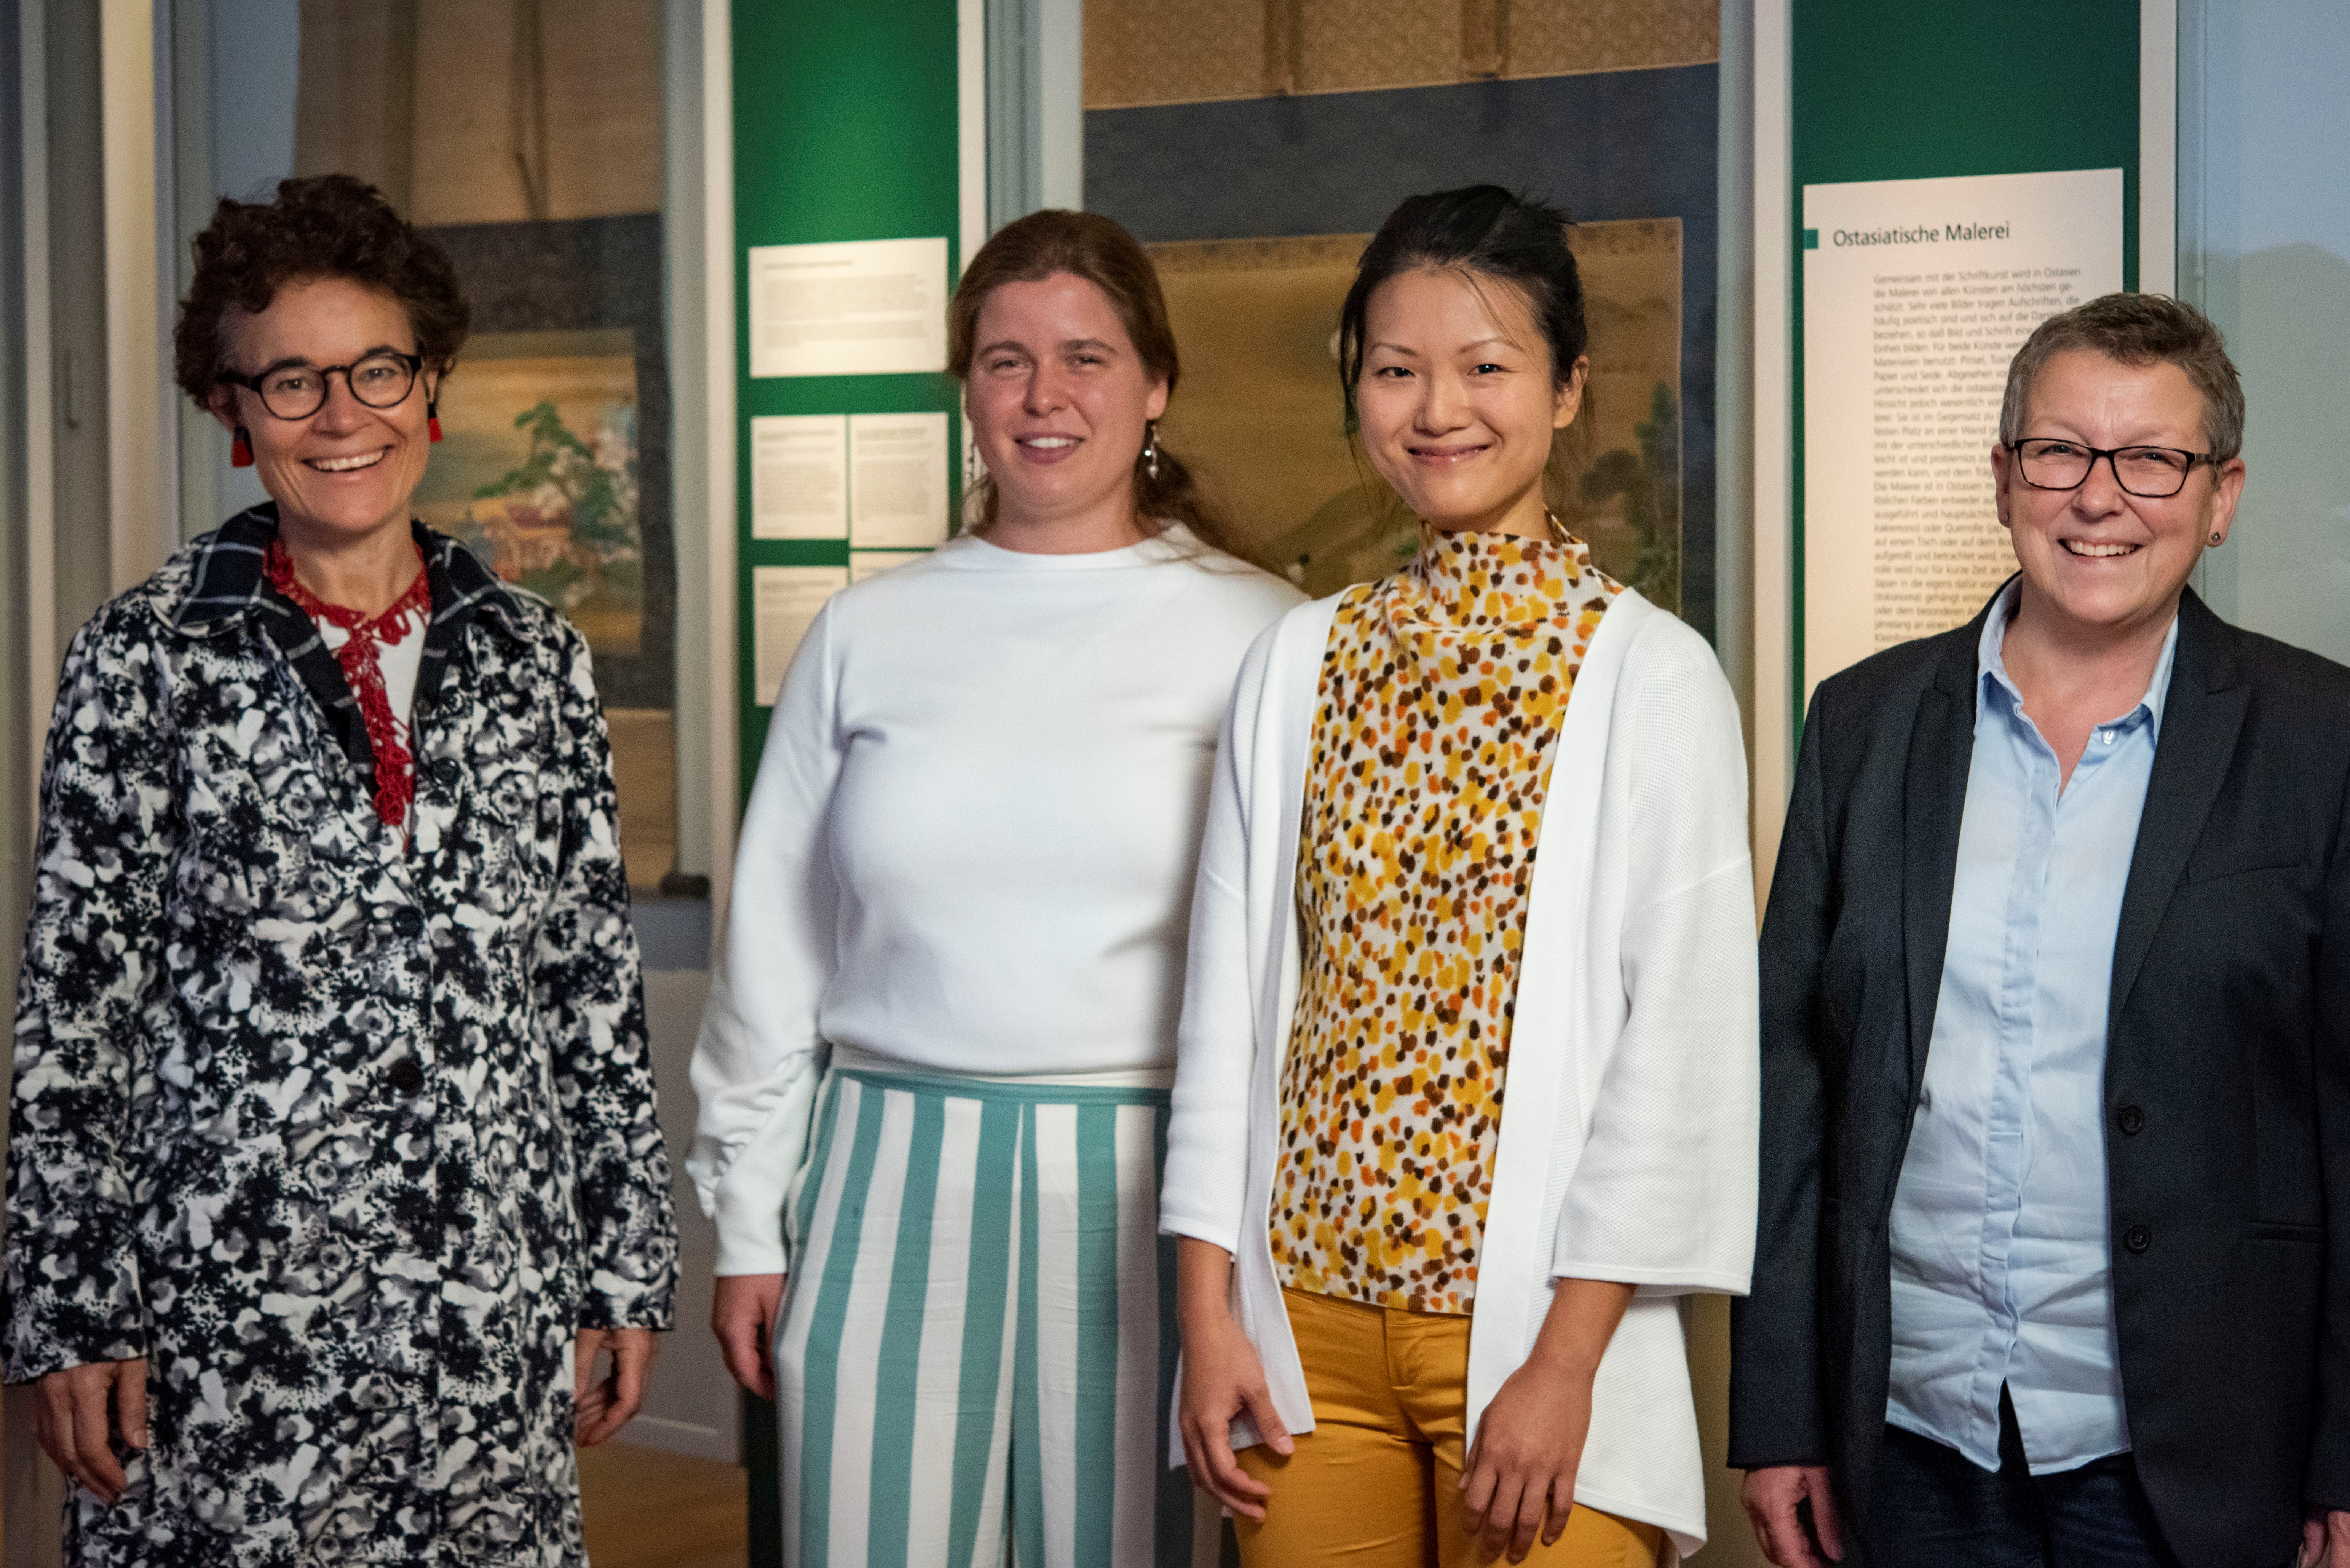 Melanie Trede, Margó Krewinkel, Emma Shu-hui Lin and Susanne Barth (Director of Finance, Lindenmuseum Stuttgart), Photo: Dominik Drasdow, Linden-Museum Stuttgart